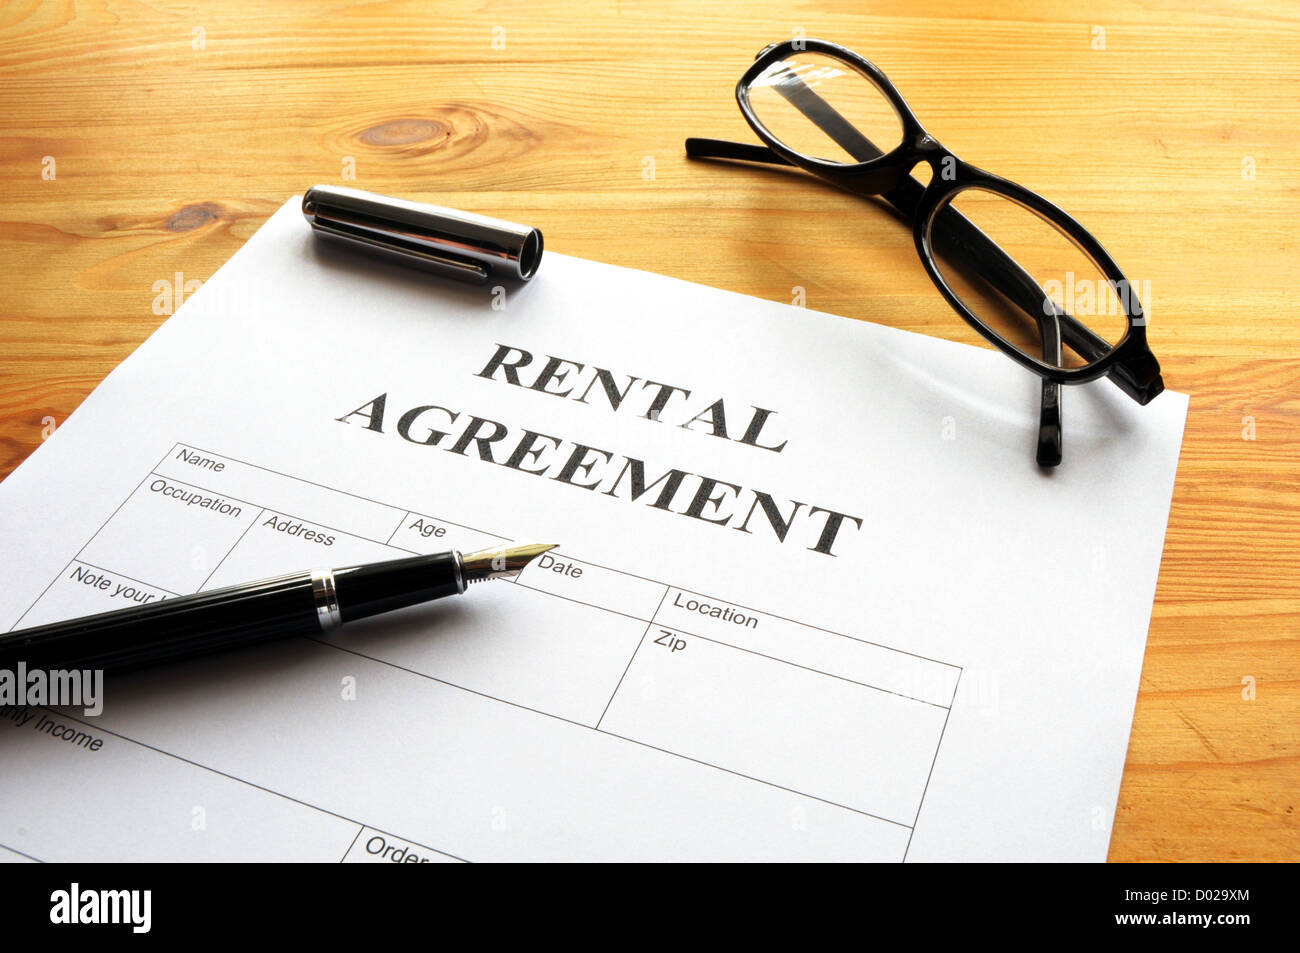 rental agreement form on desktop in business office showing real estate concept Stock Photo